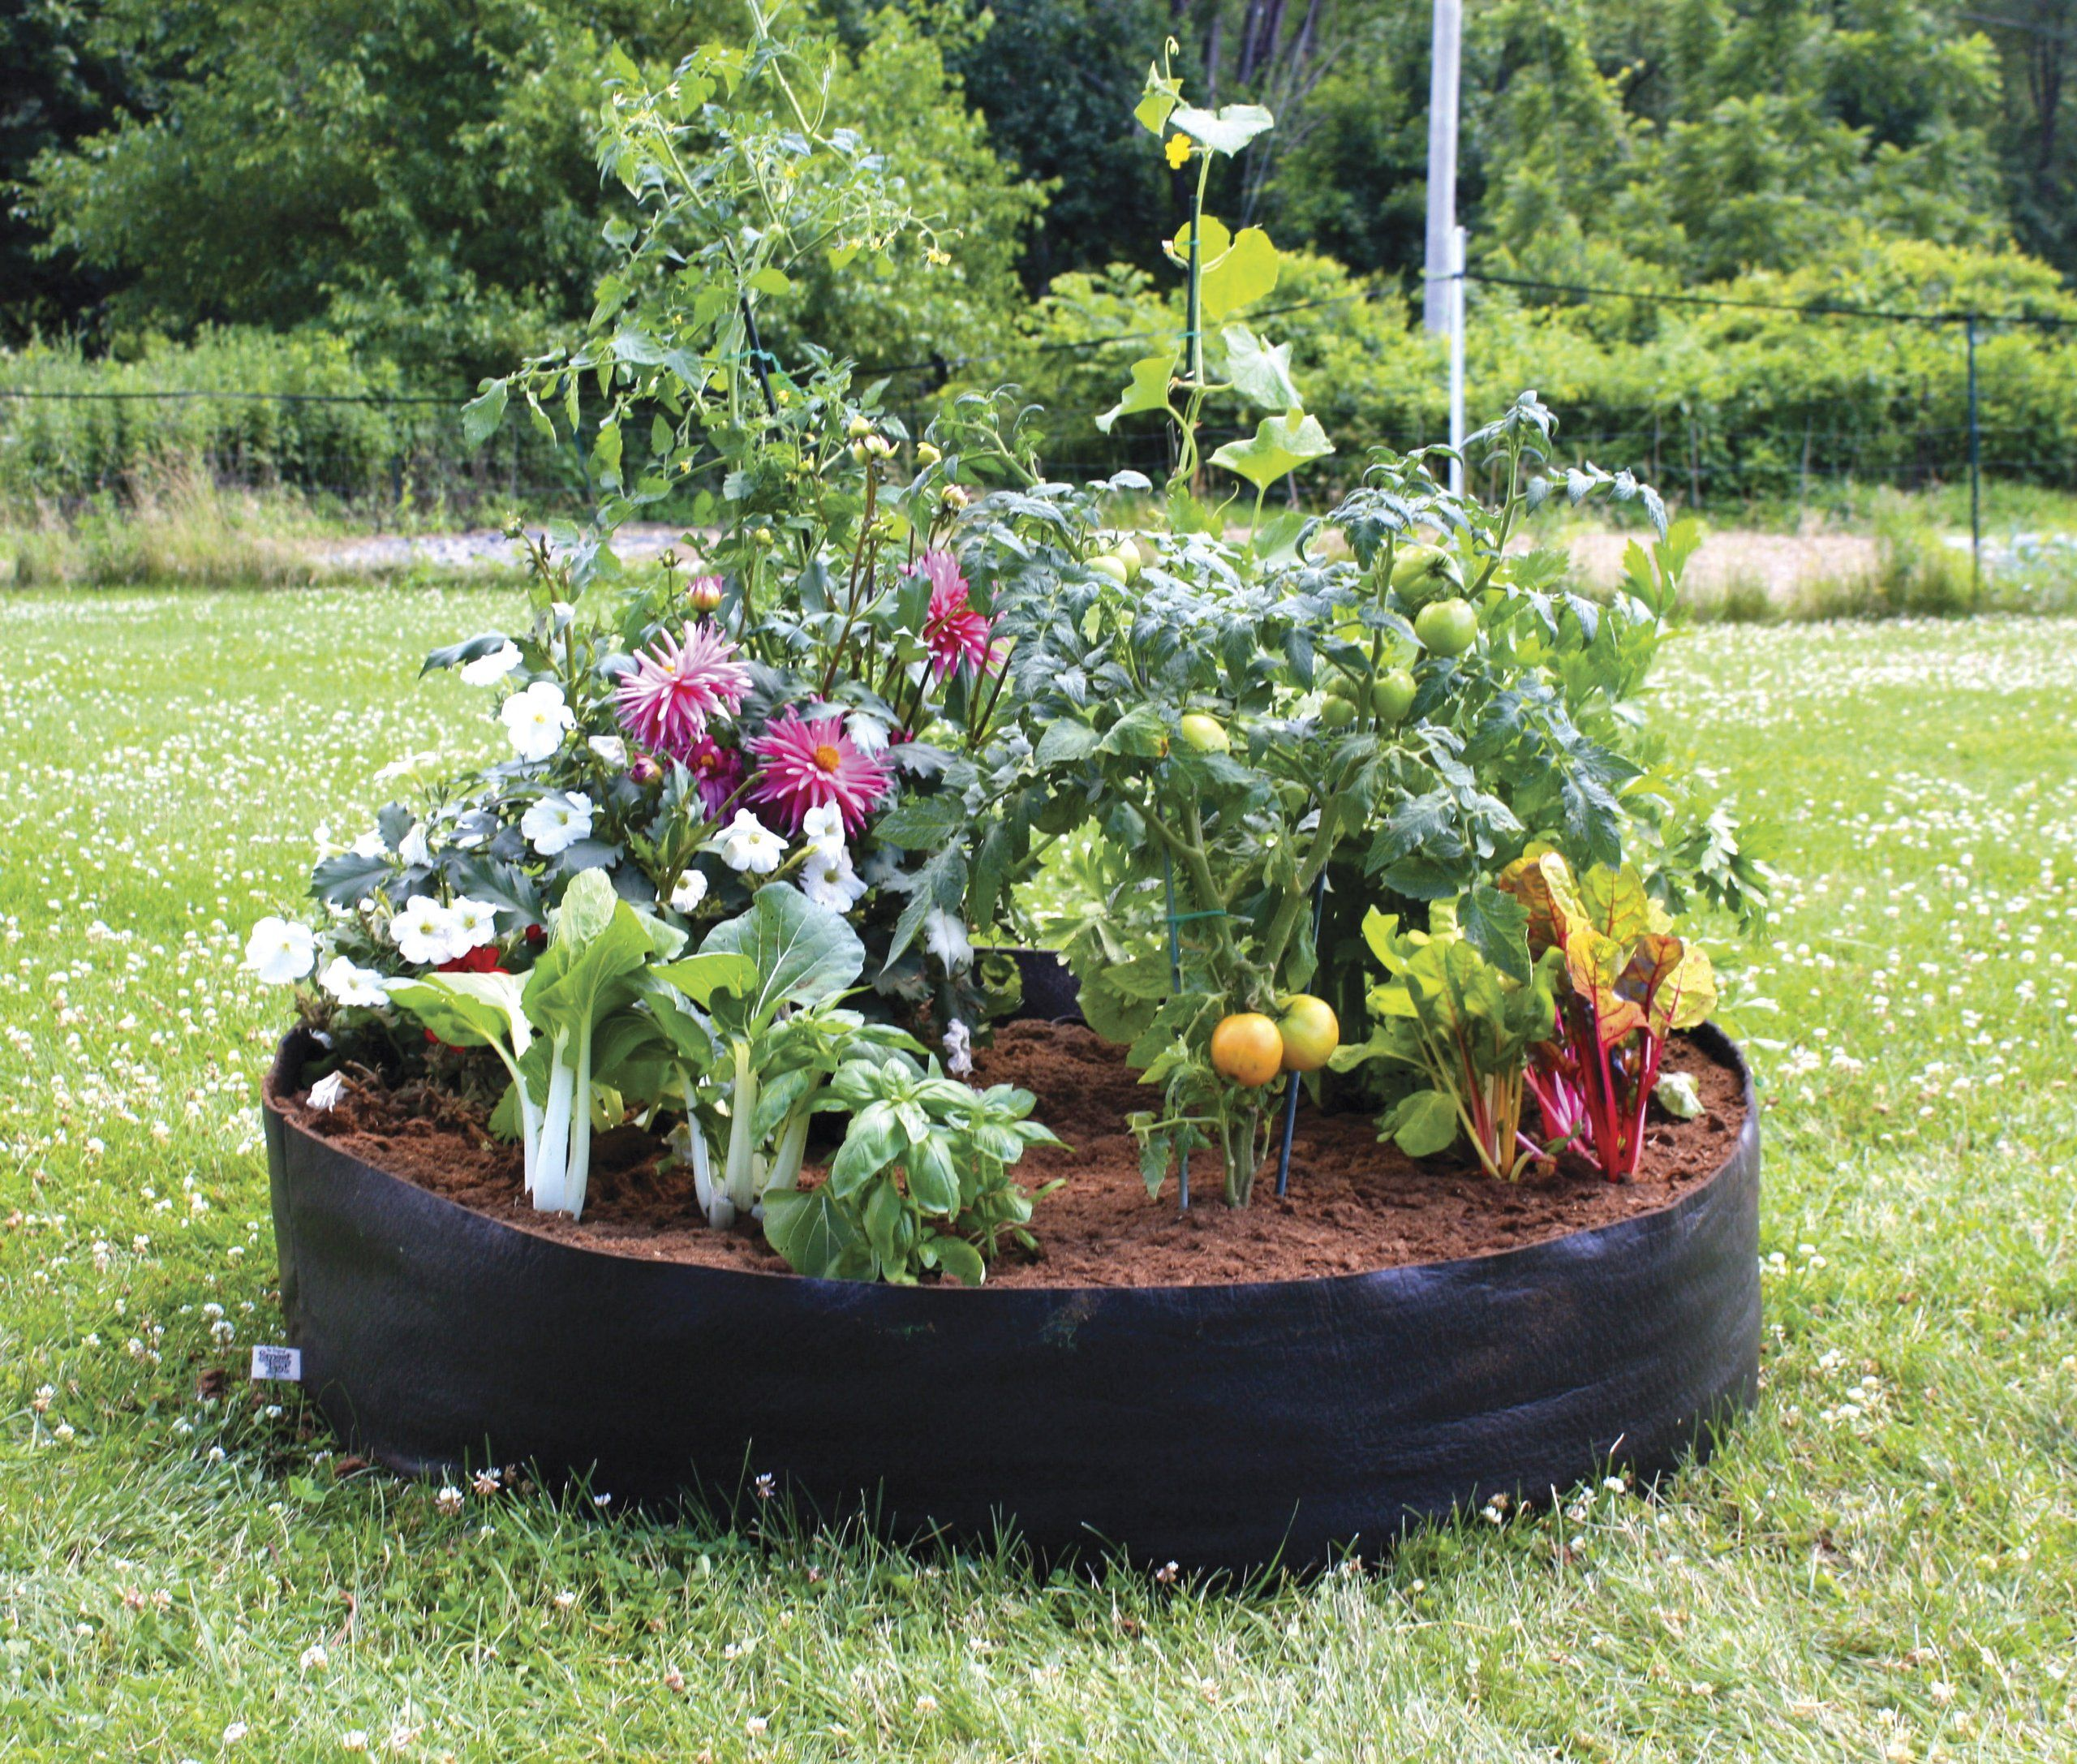 Amazon.com : Smart Pots Big Bag Bed Fabric Raised Bed : Raised Garden Kits